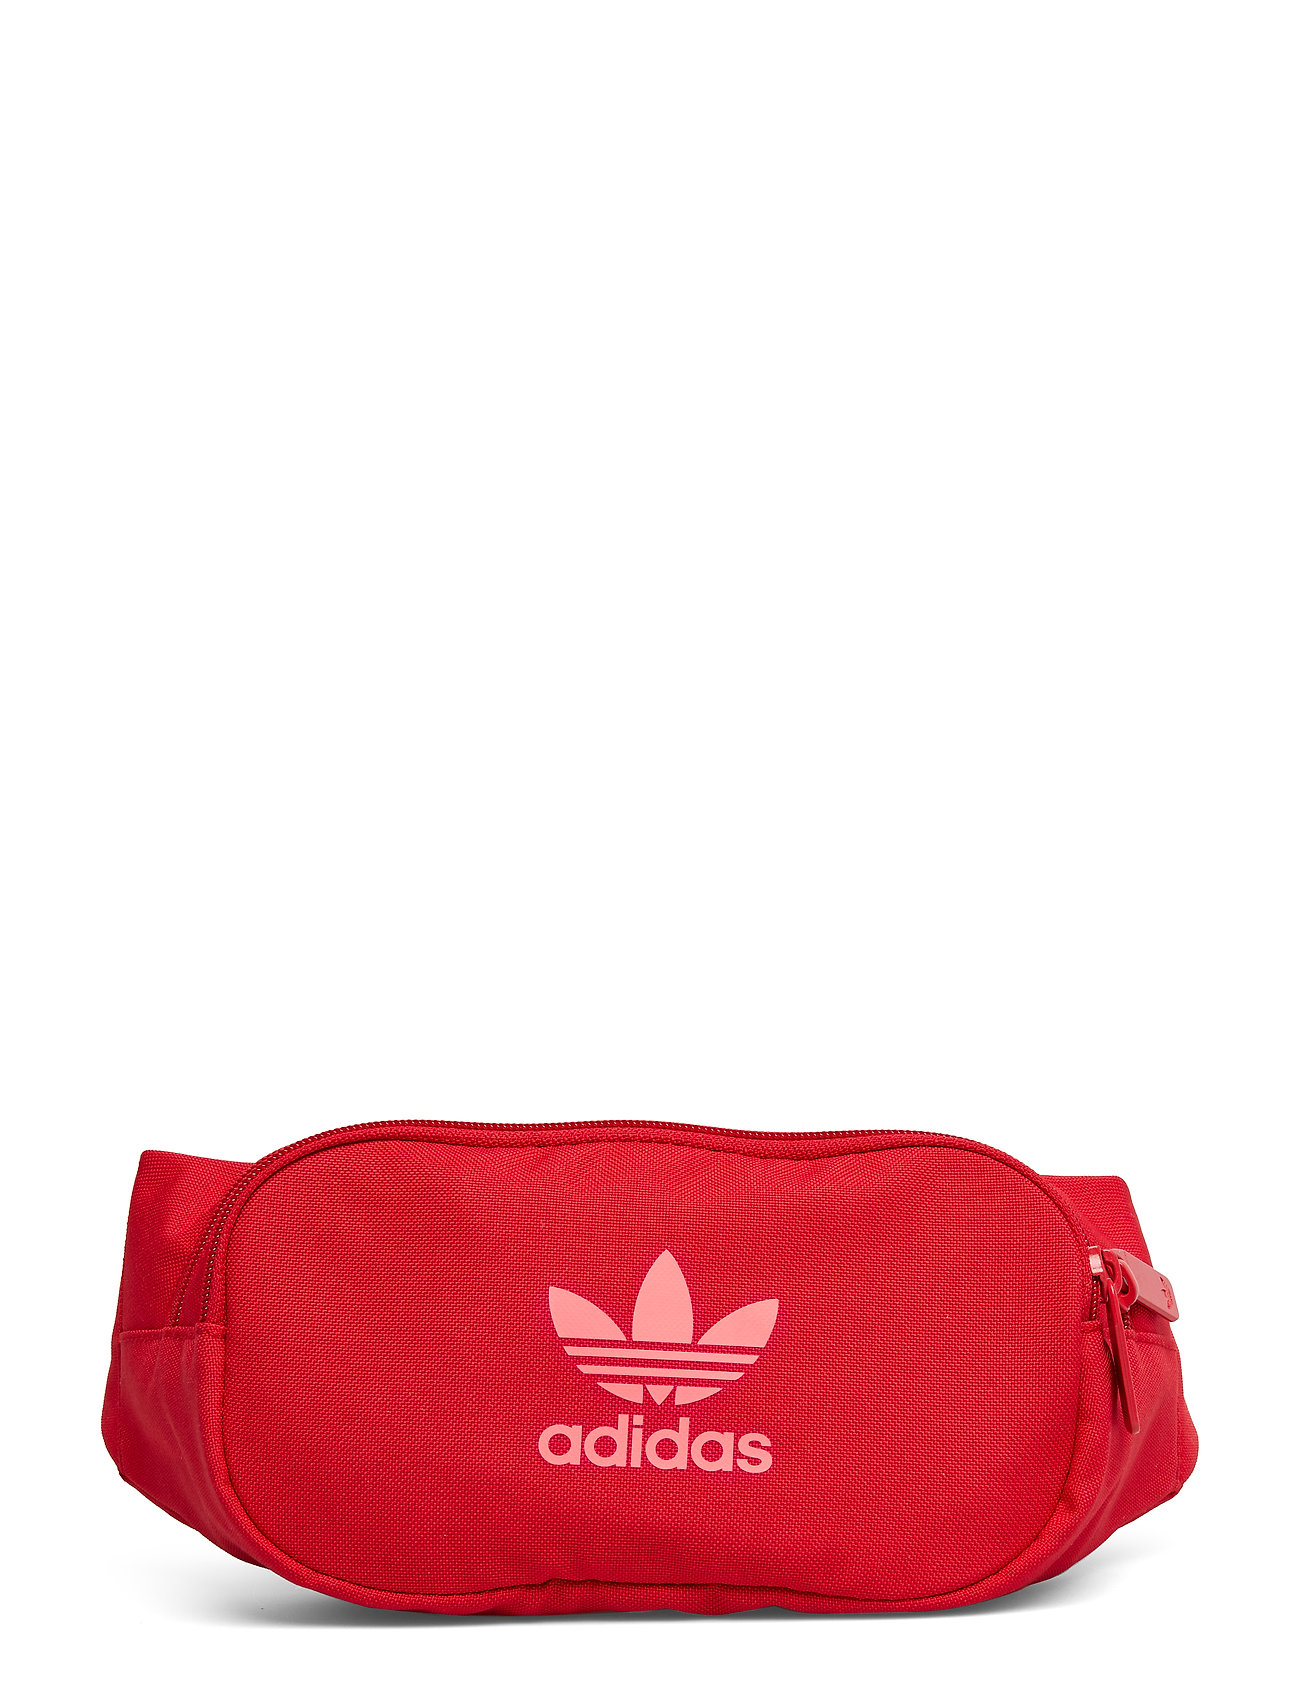 adidas Originals ESSENTIAL CBODY - SCARLE